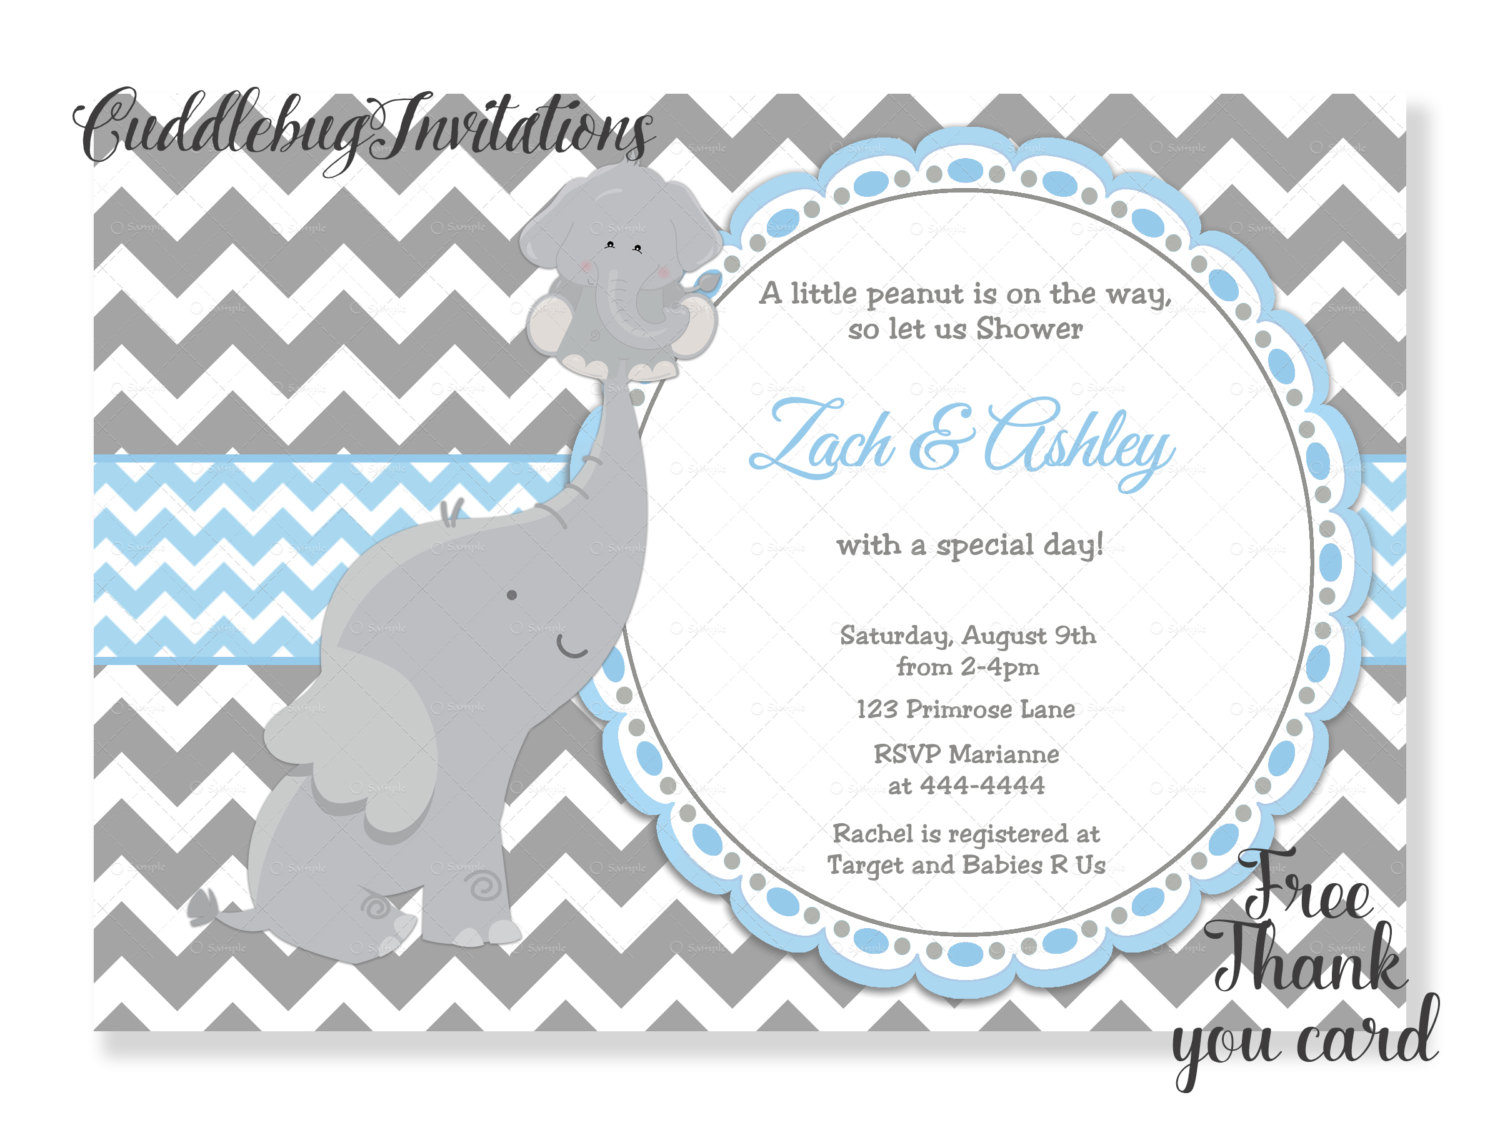 Glamorous Beautiful Boy Baby Shower Invitations 9 - Wyllieforgovernor with New Baby Boy Baby Shower Invitations